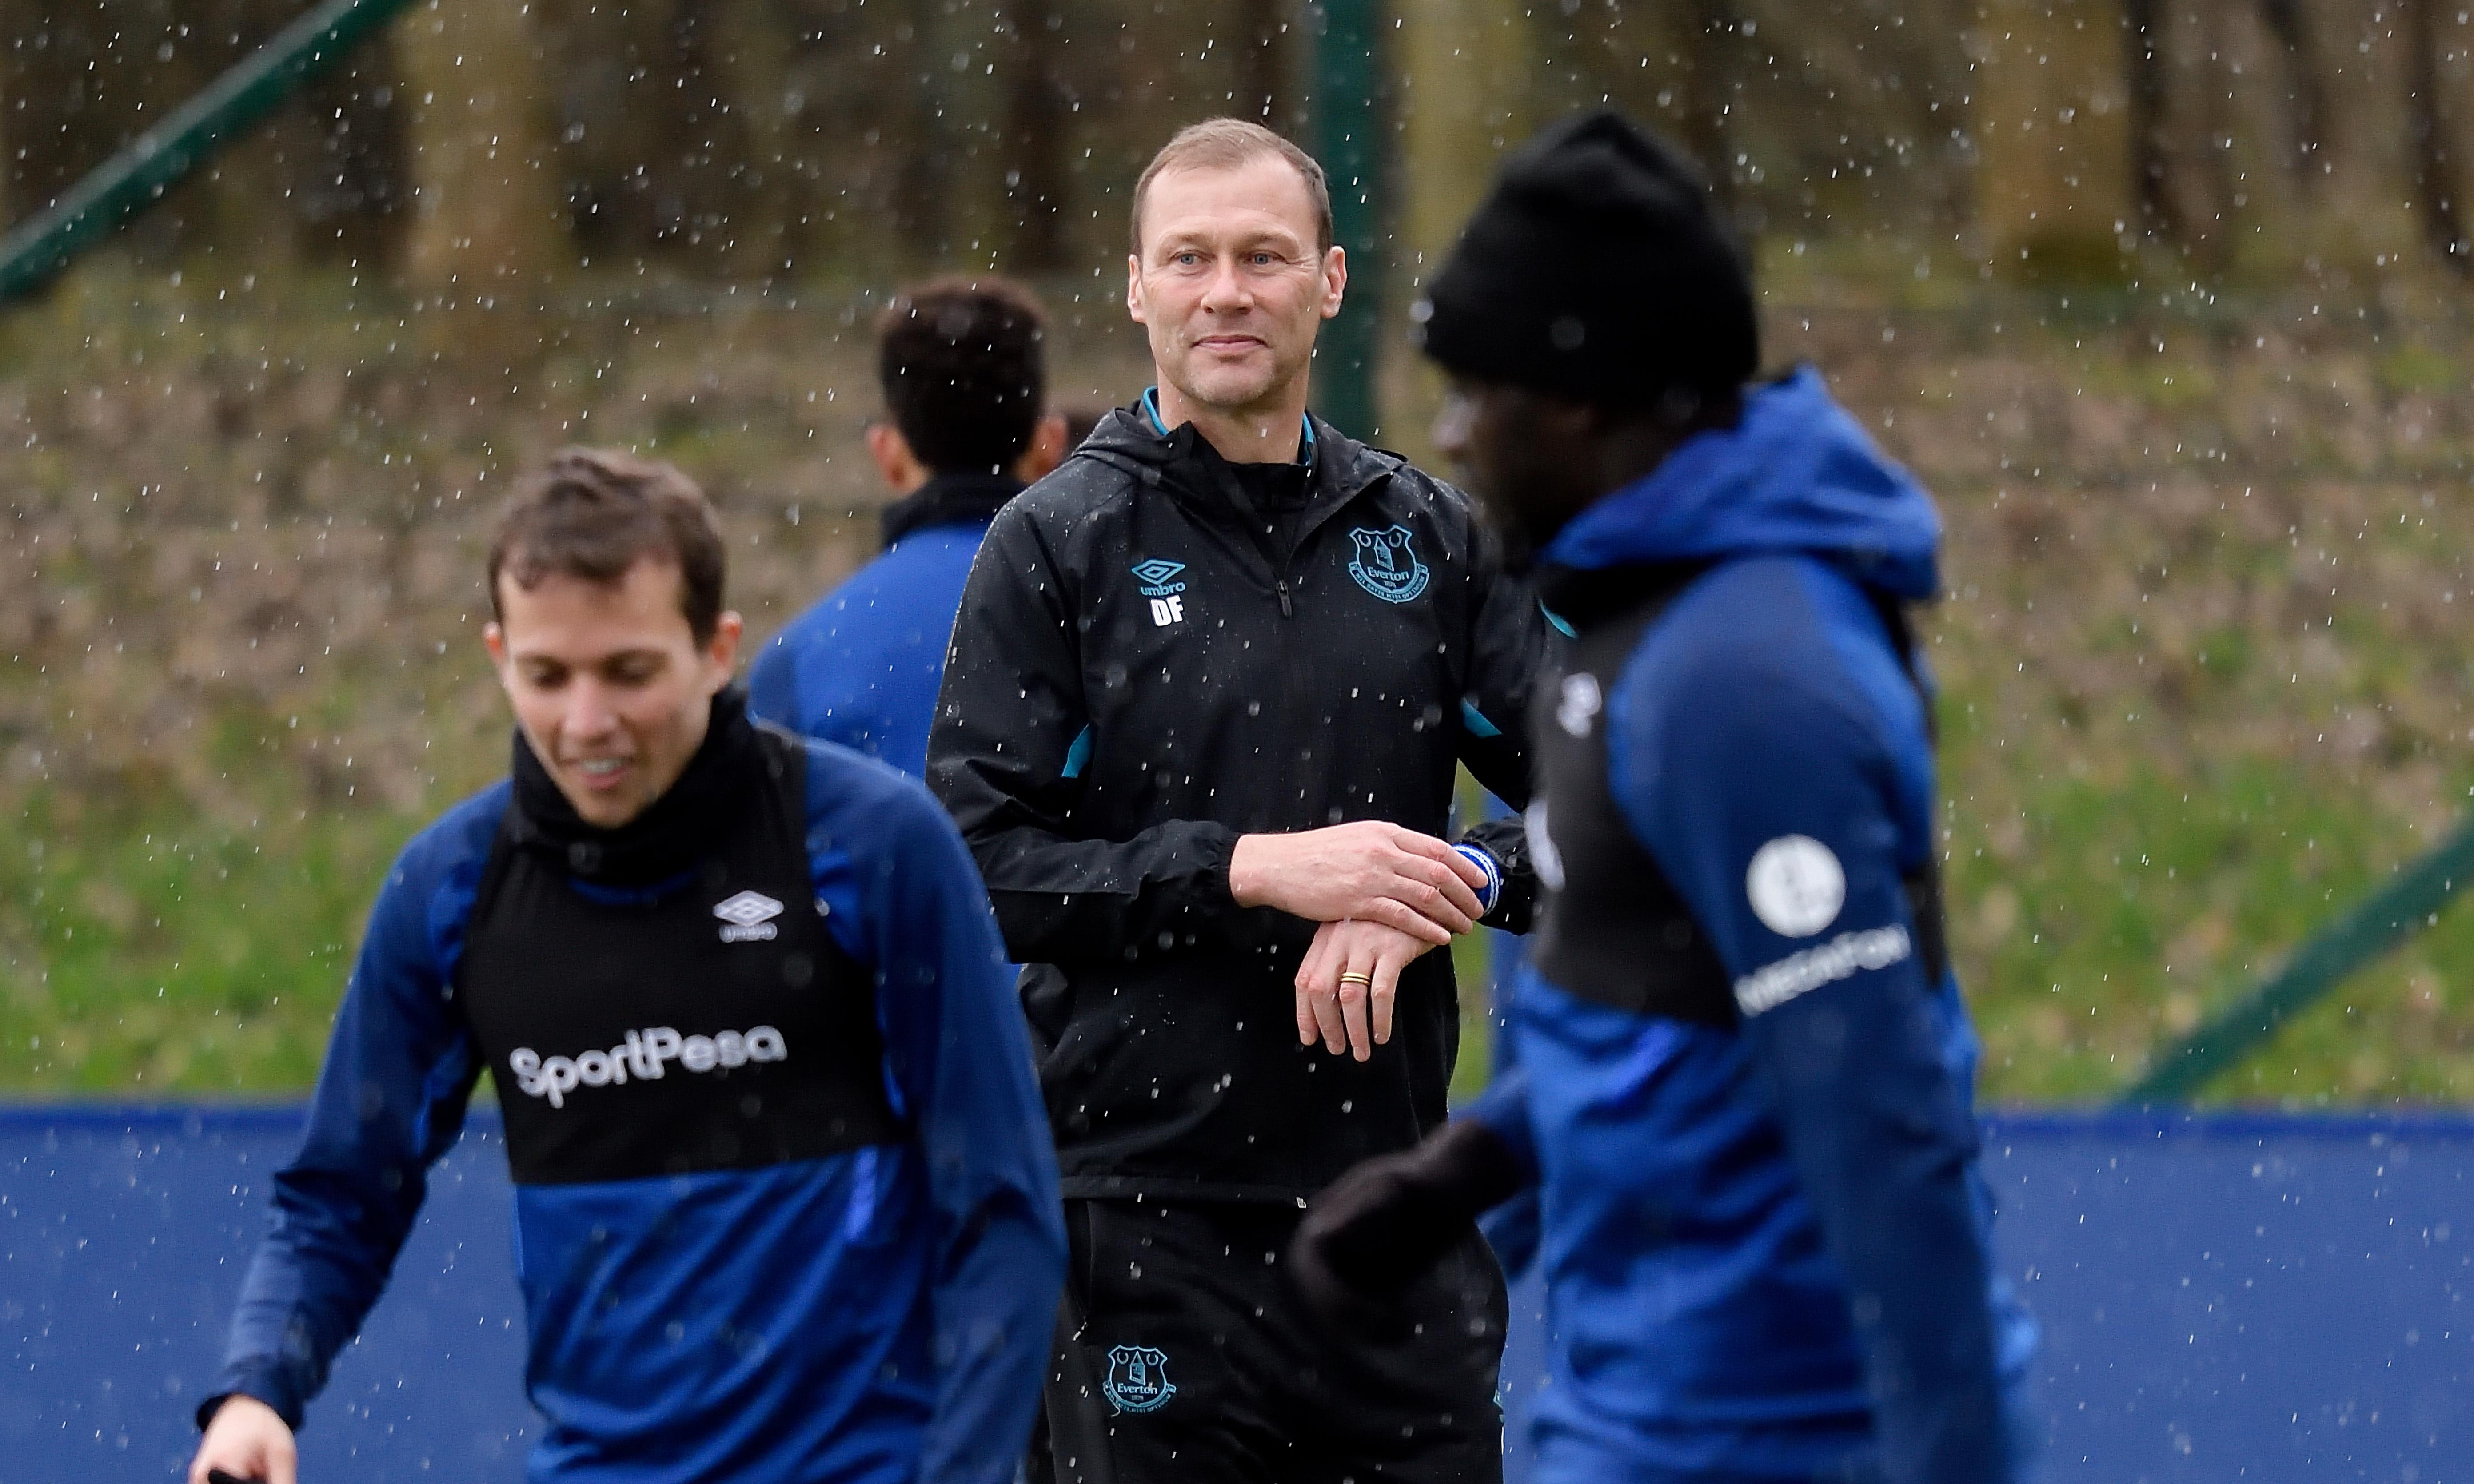 Temporary manager Duncan Ferguson wells up as he sweats on Everton future